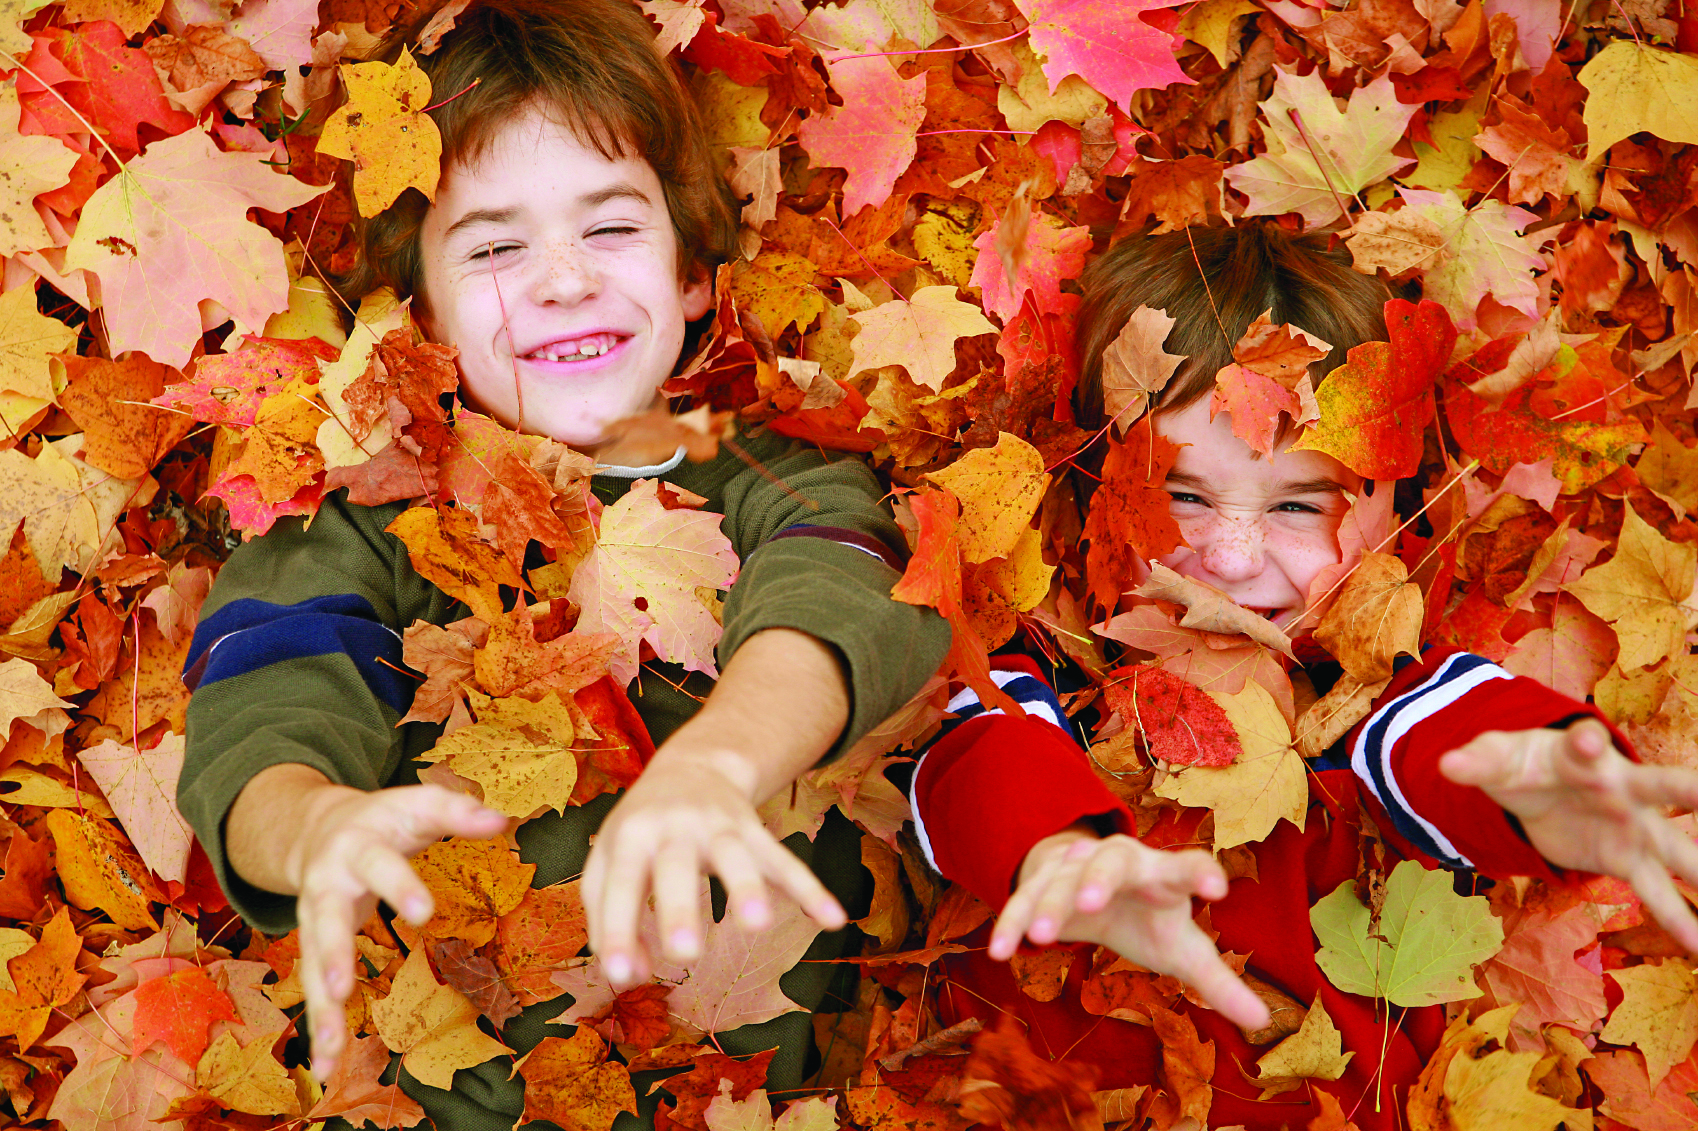 Two young boys laying down in a pile of autumn leaves